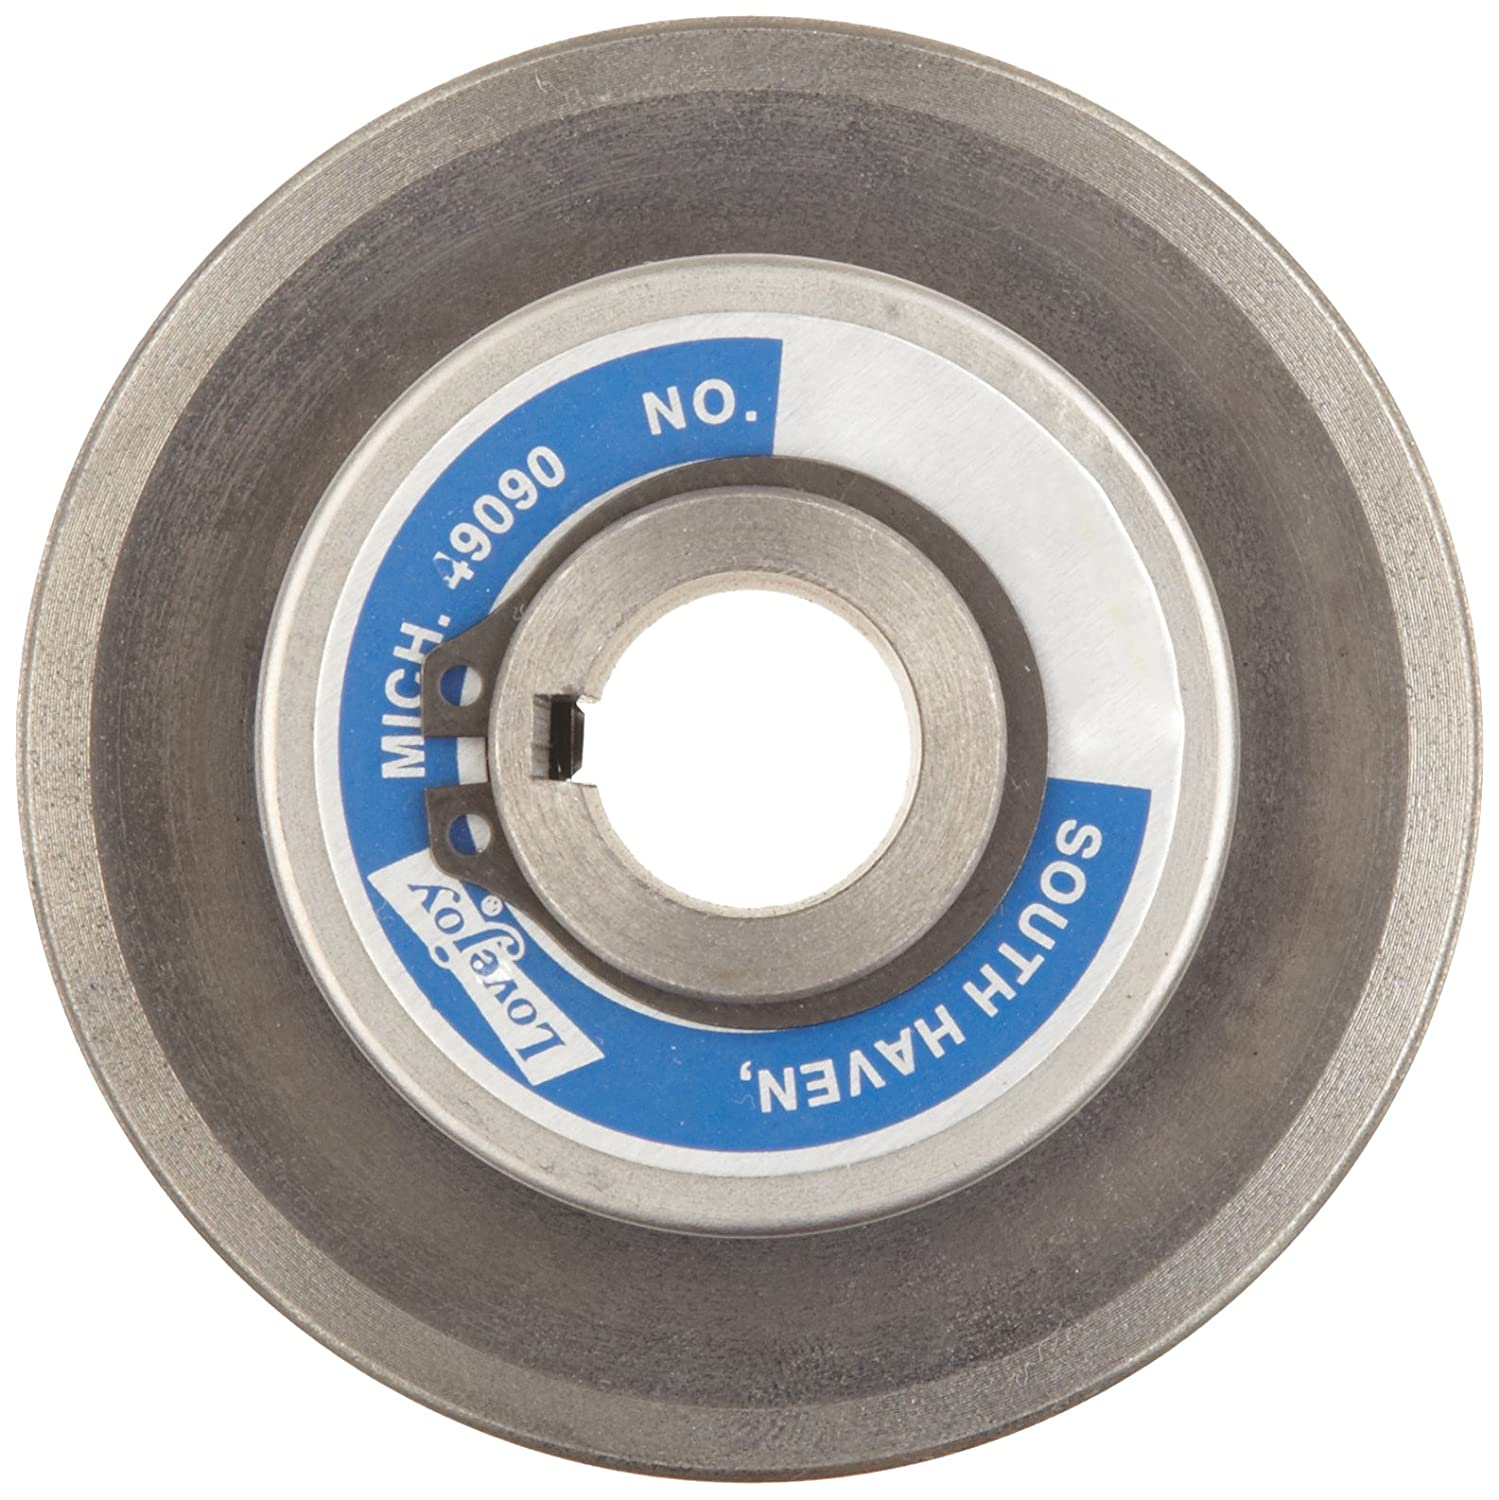 Lovejoy 3403 Econoline Variable Speed Pulley 12 inch-pounds Torque Capacity 2.81 Overall Length 5//8 Bore 3//16 x 3//32 Keyway 3.38 OD 2.81 Overall Length 68514427807 3//16 x 3//32 Keyway 3.38 OD 5//8 Bore